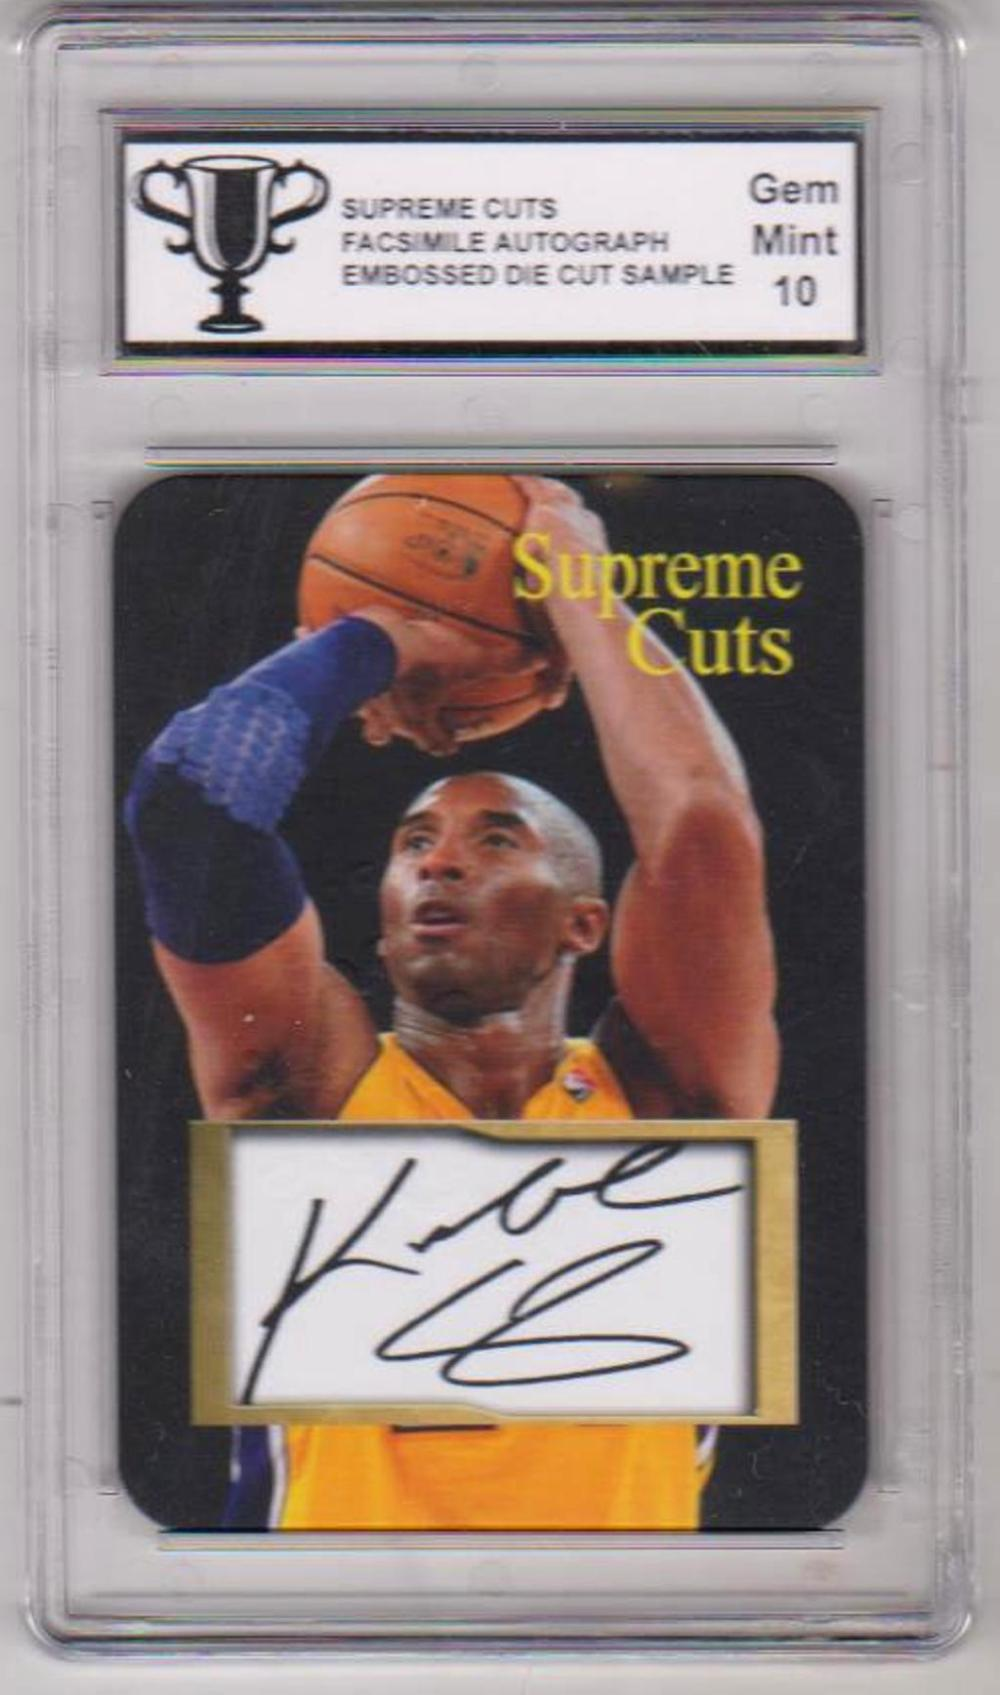 Graded Gem Mint 10 Kobe Bryant Supreme Cuts Facsimile Autograph Embossed Die Cut Sample Card